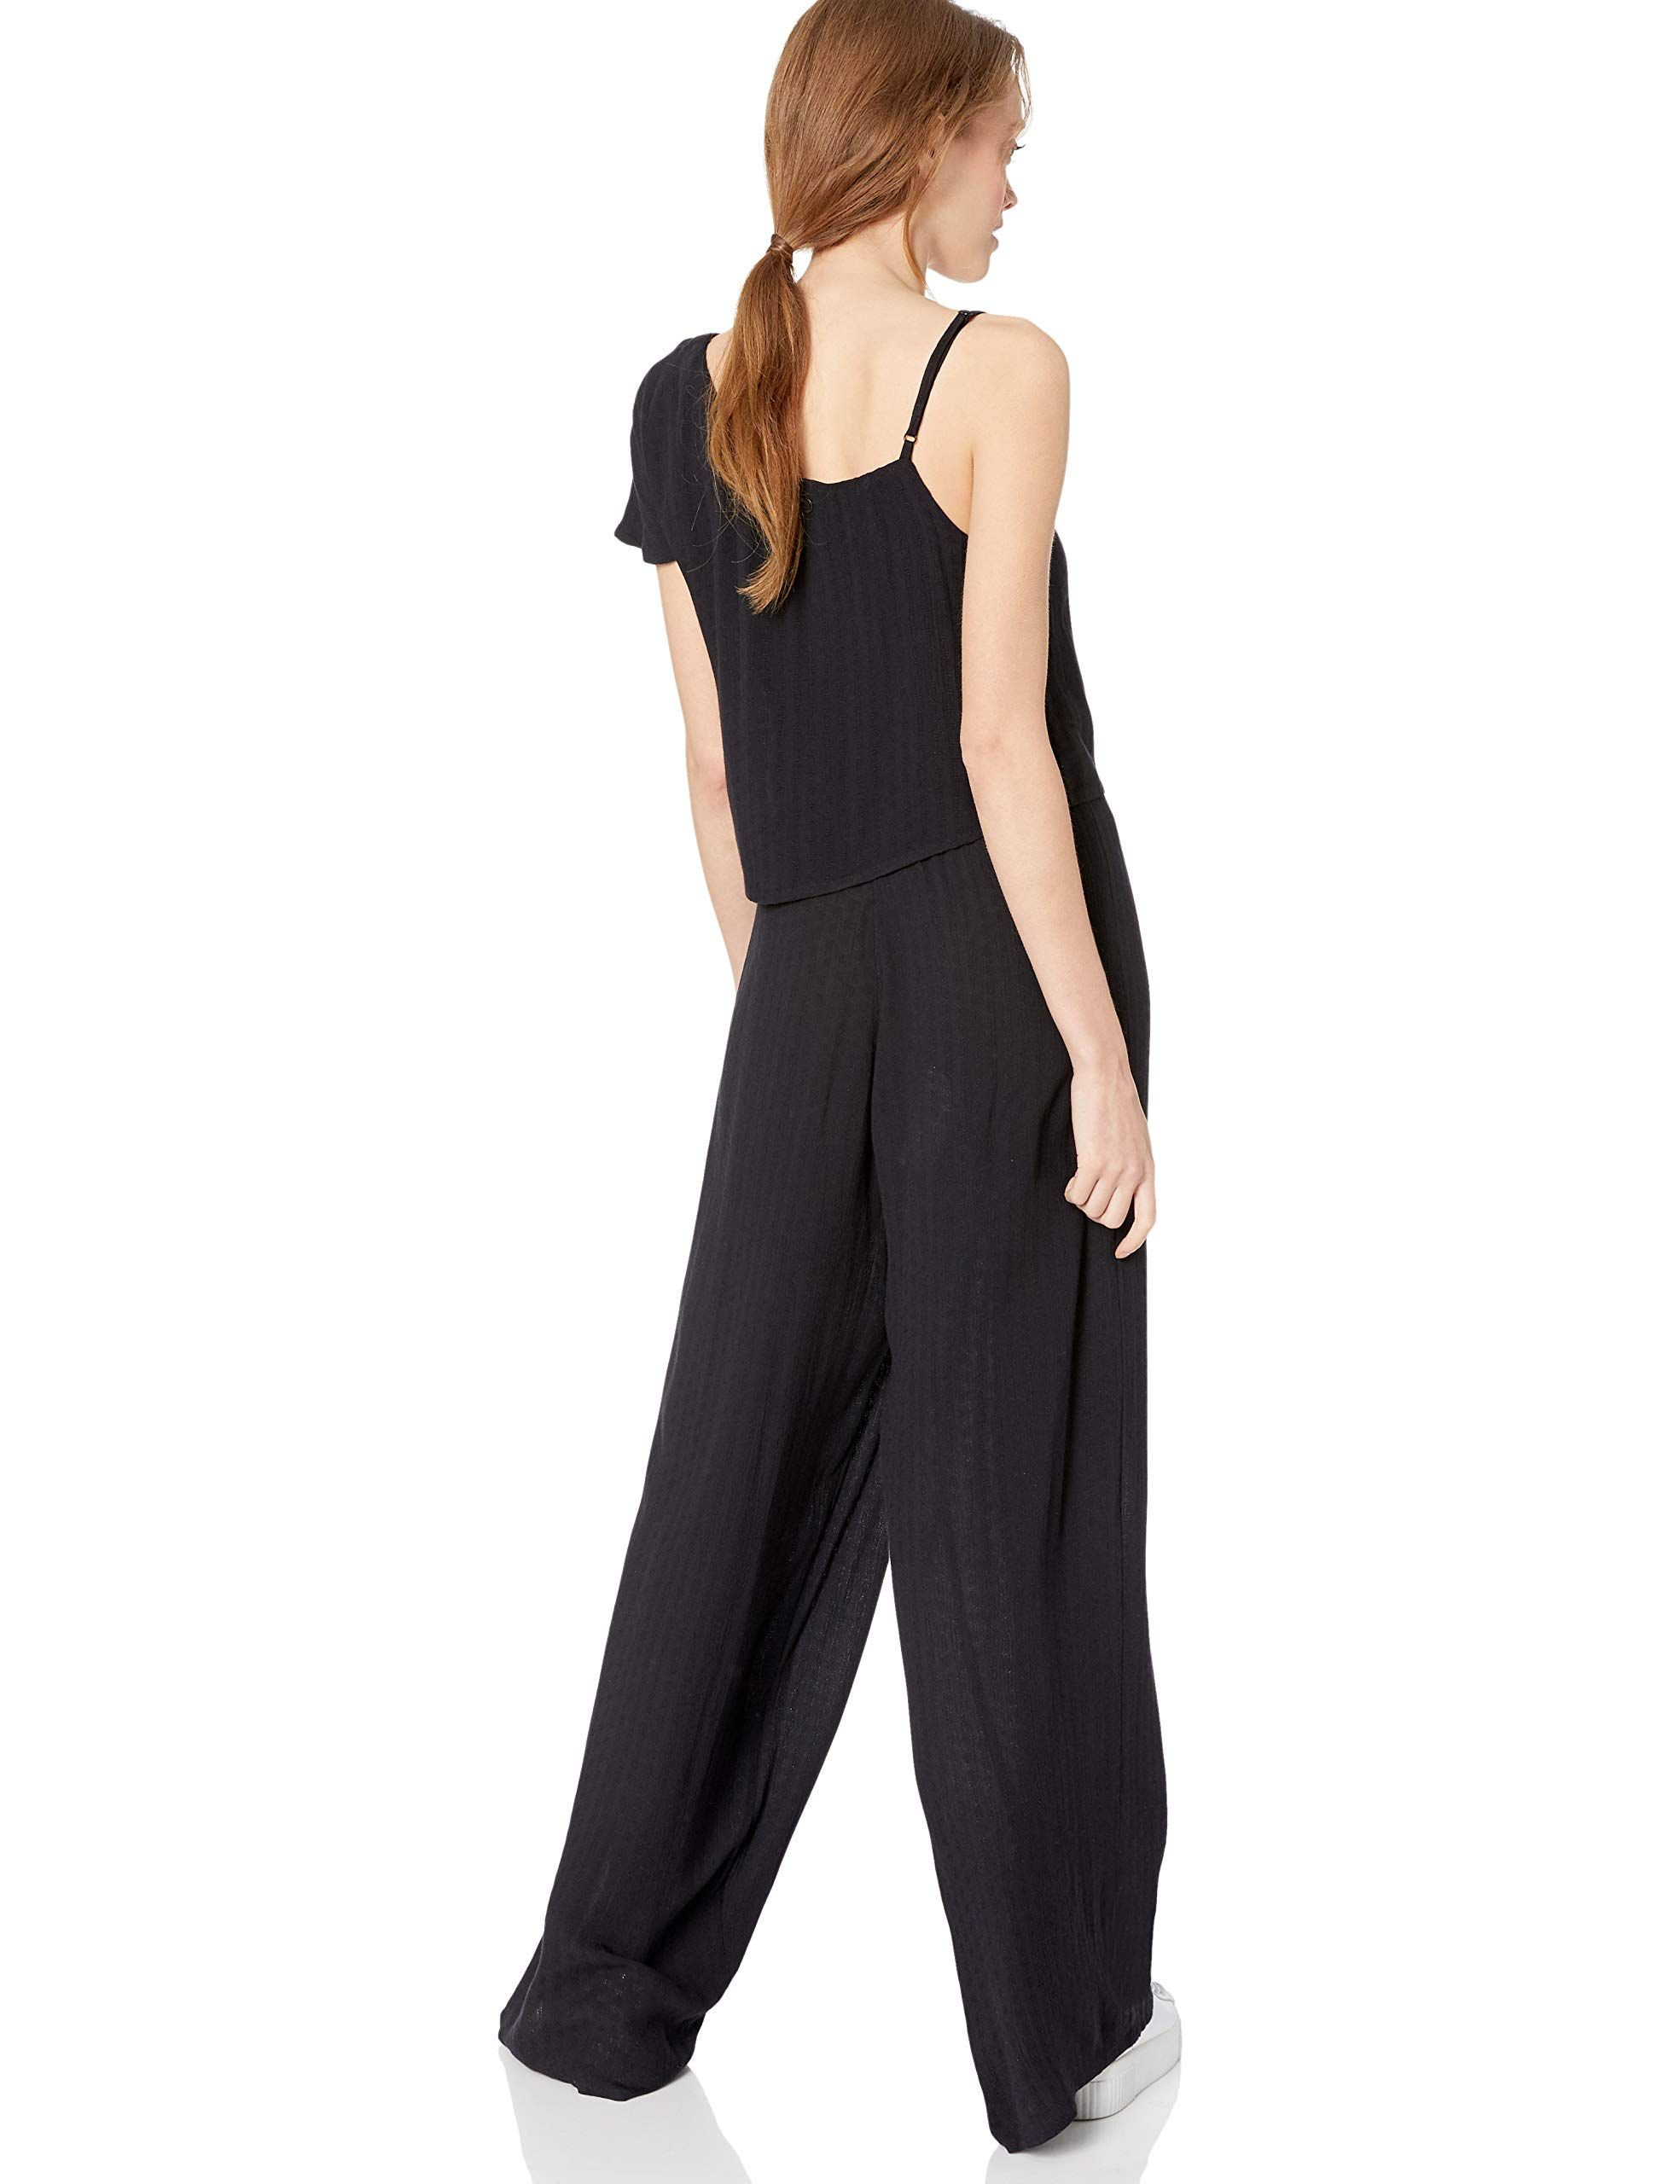 dc7d45715e5 Roxy Juniors Komodo Exploring Full Length Romper True Black S -- You could  figure out